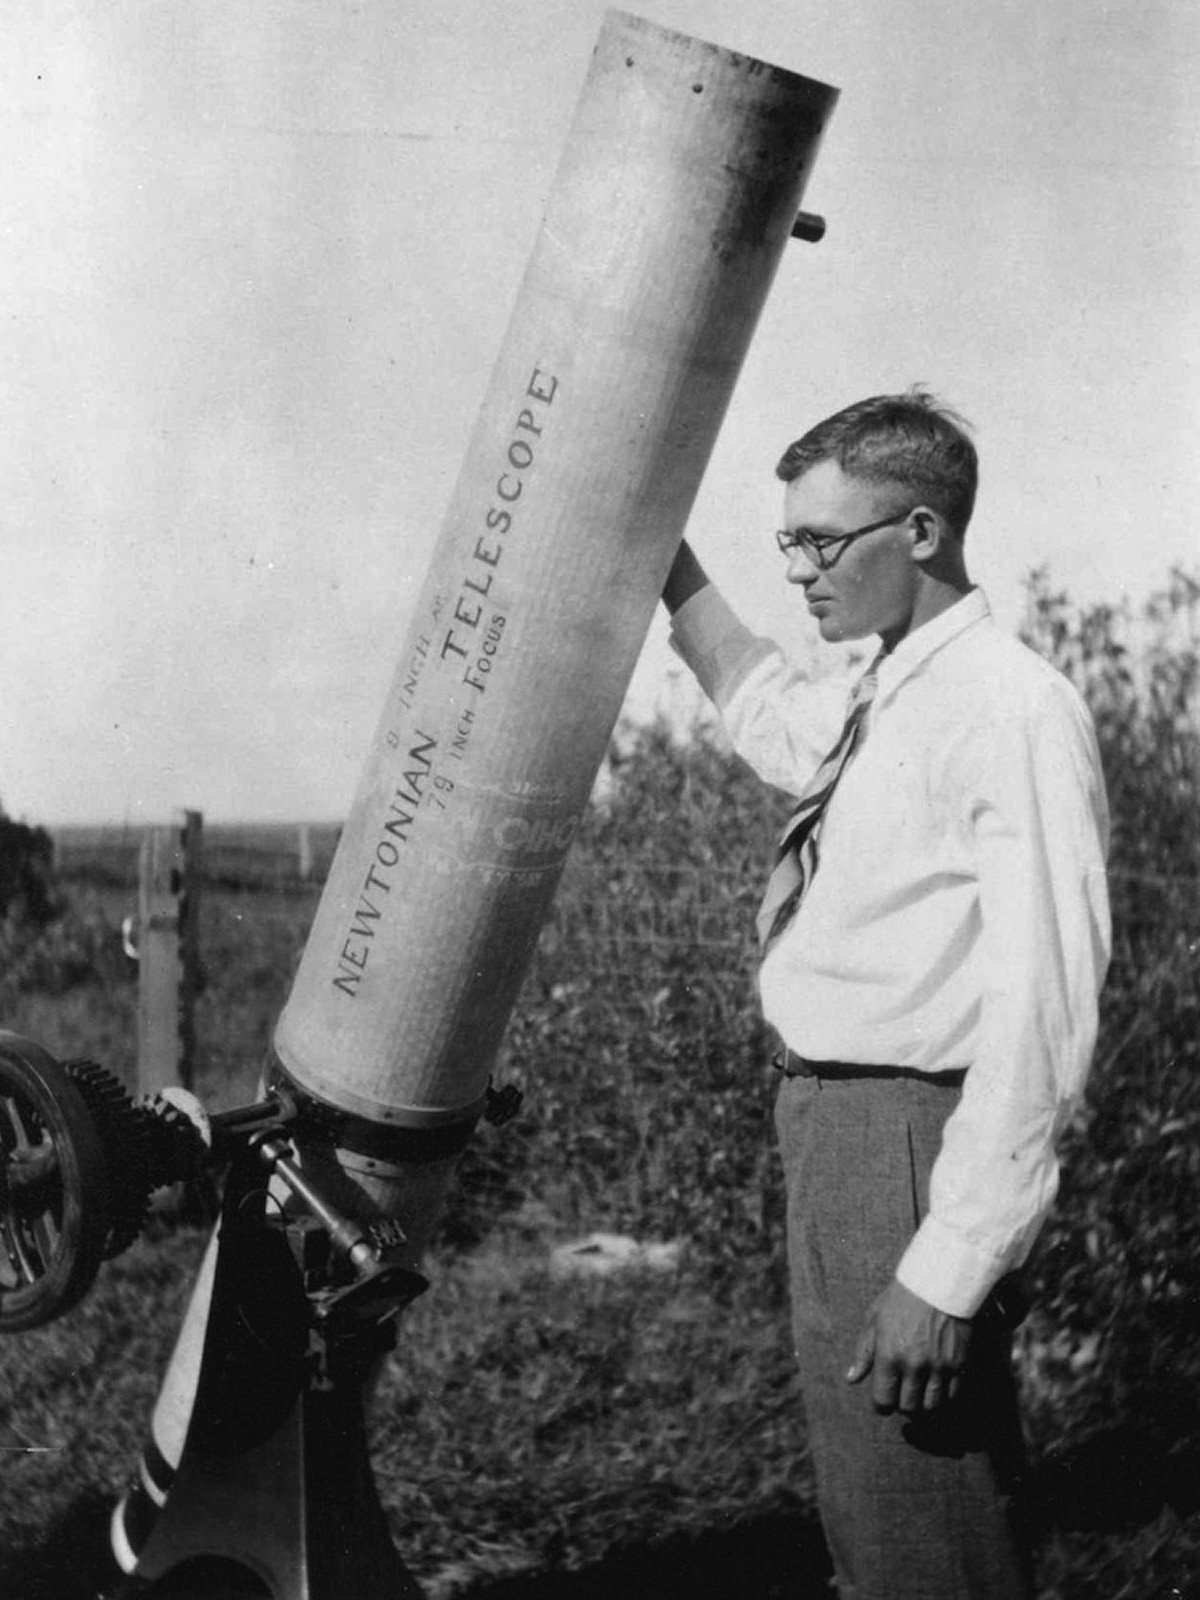 Clyde Tombaugh, the discoverer of Pluto, was searching the skies for objects in the 1950s